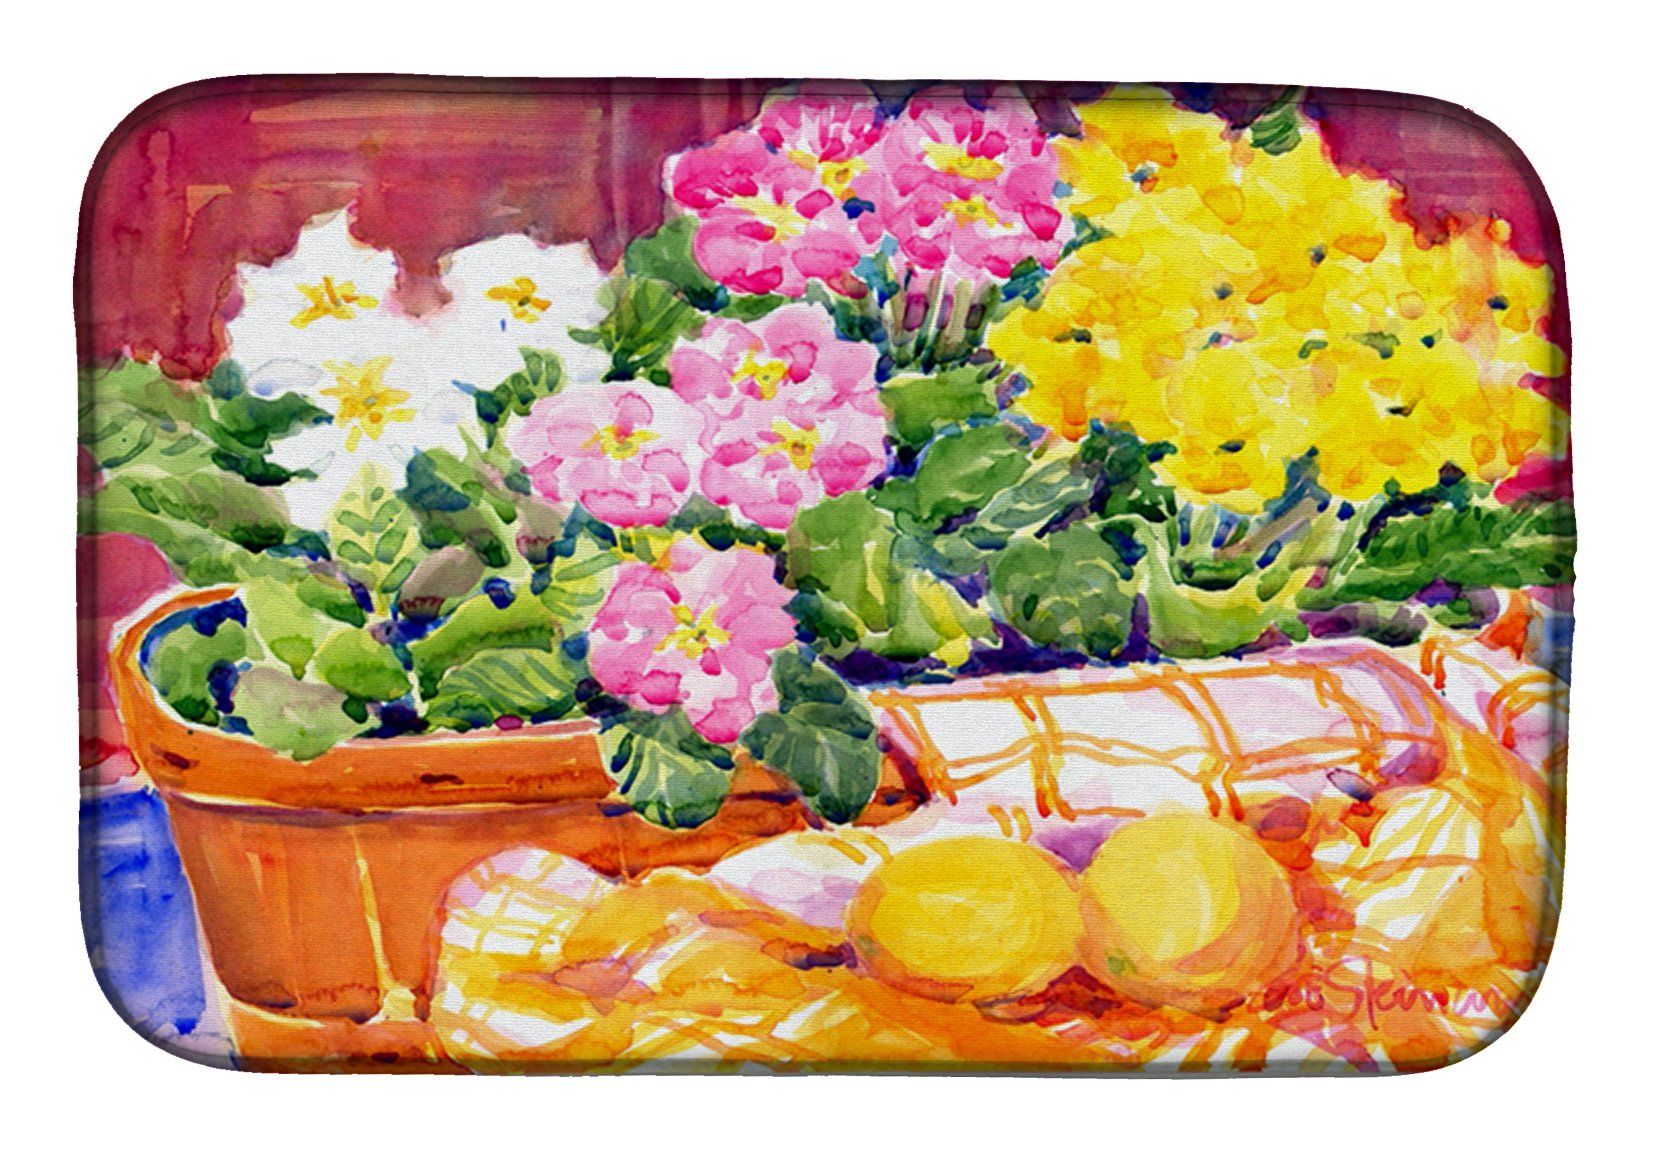 Flower - Primroses Dish Drying Mat 6061DDM by Caroline's Treasures